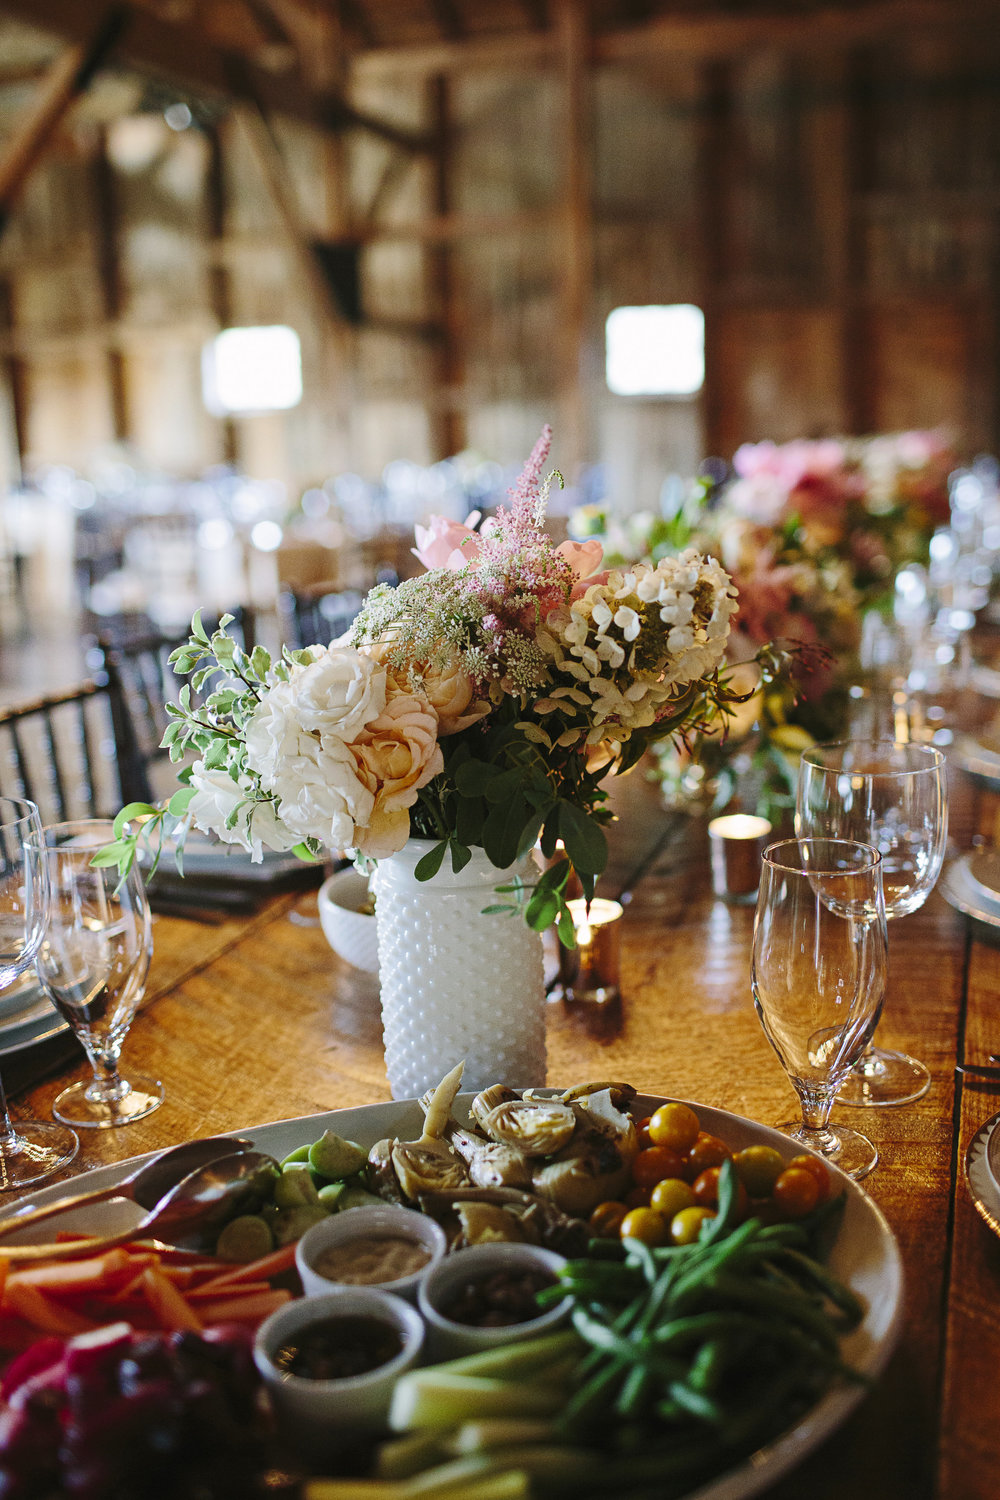 Styled Bride Wedding - First Course of passed fresh vegetables from (A)muse. Photo: Brooke Courtney. Florals: Sullivan Owen Rentals: Maggpie Vintage & Party Rentals LTD.